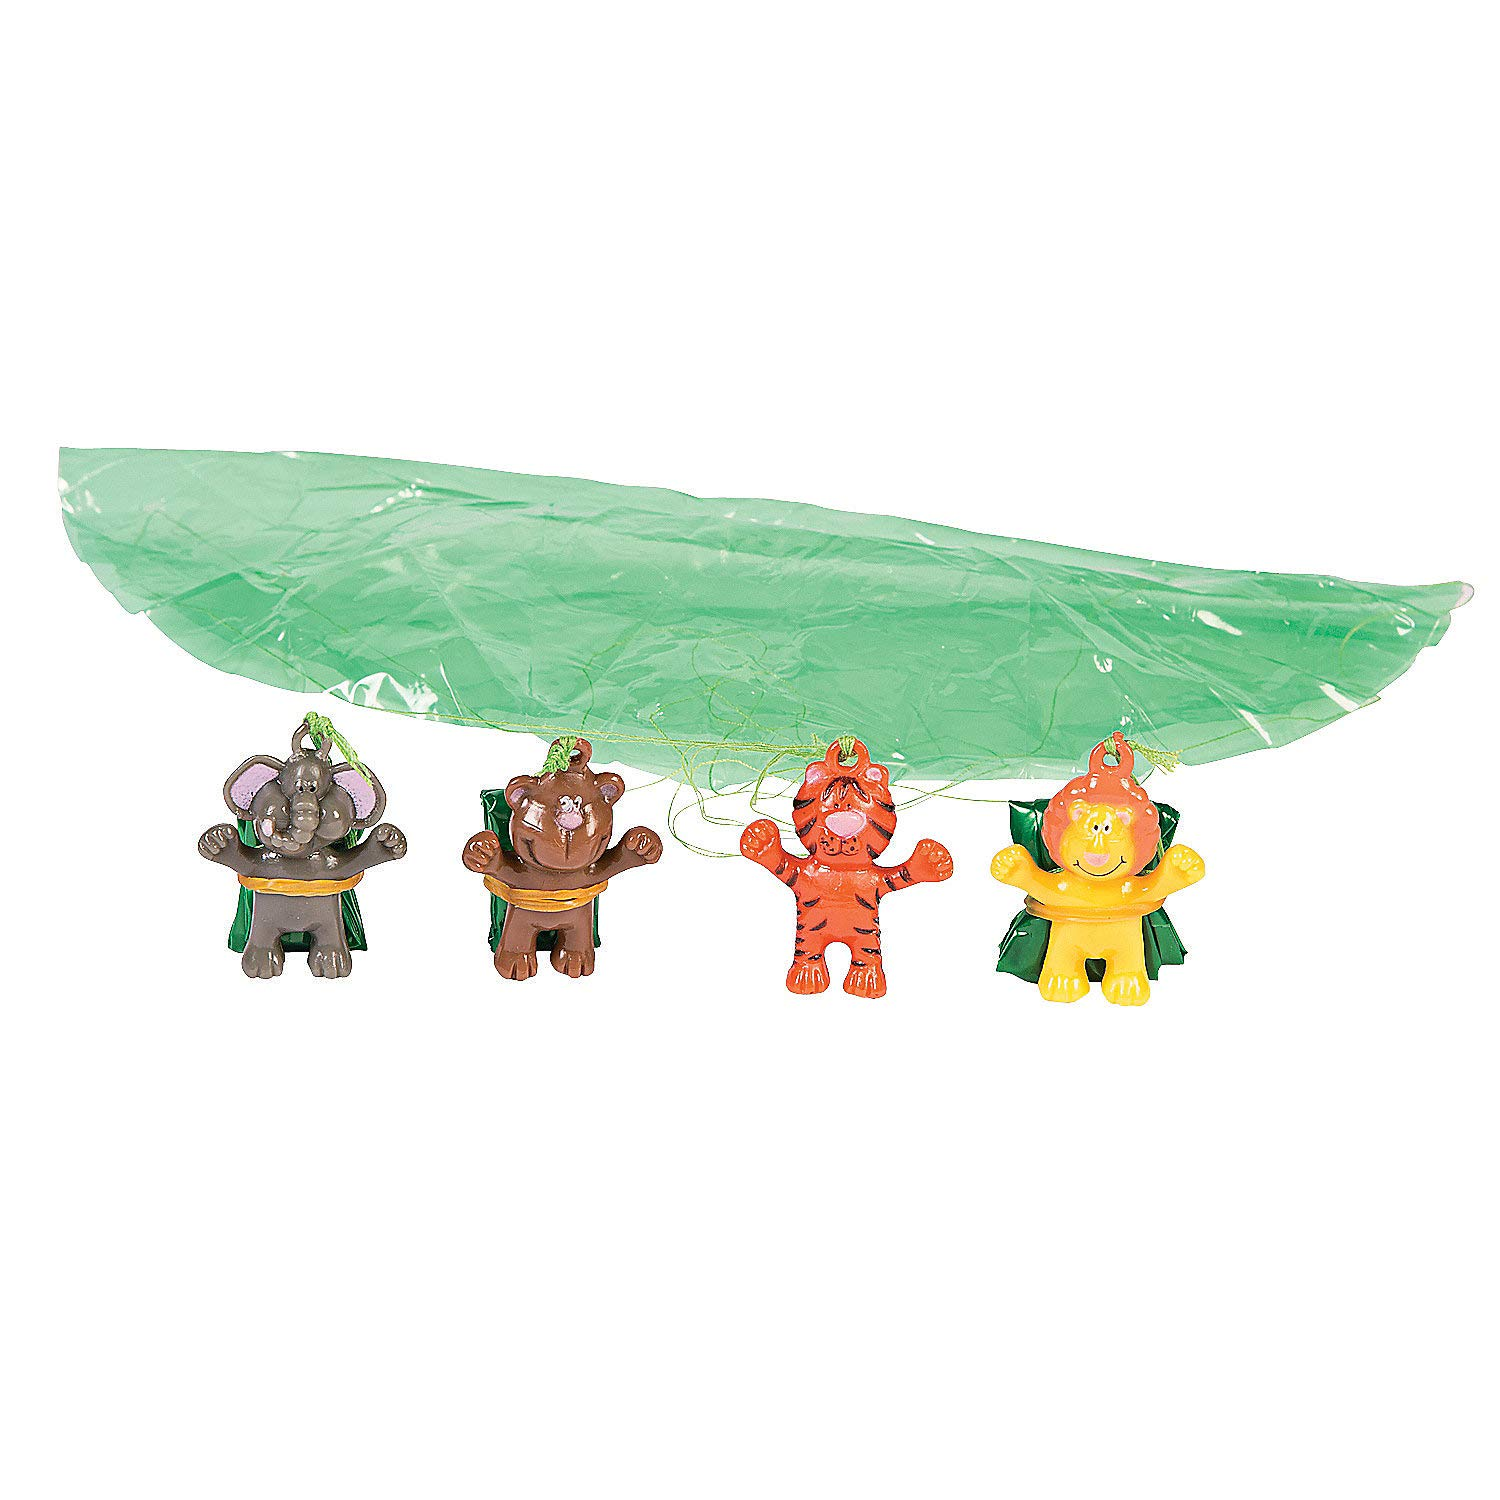 Fun Express - Zoo Animal Paratroopers (4dz) - Toys - Character Toys - Wind Ups & Paratroopers - 48 Pieces by Fun Express